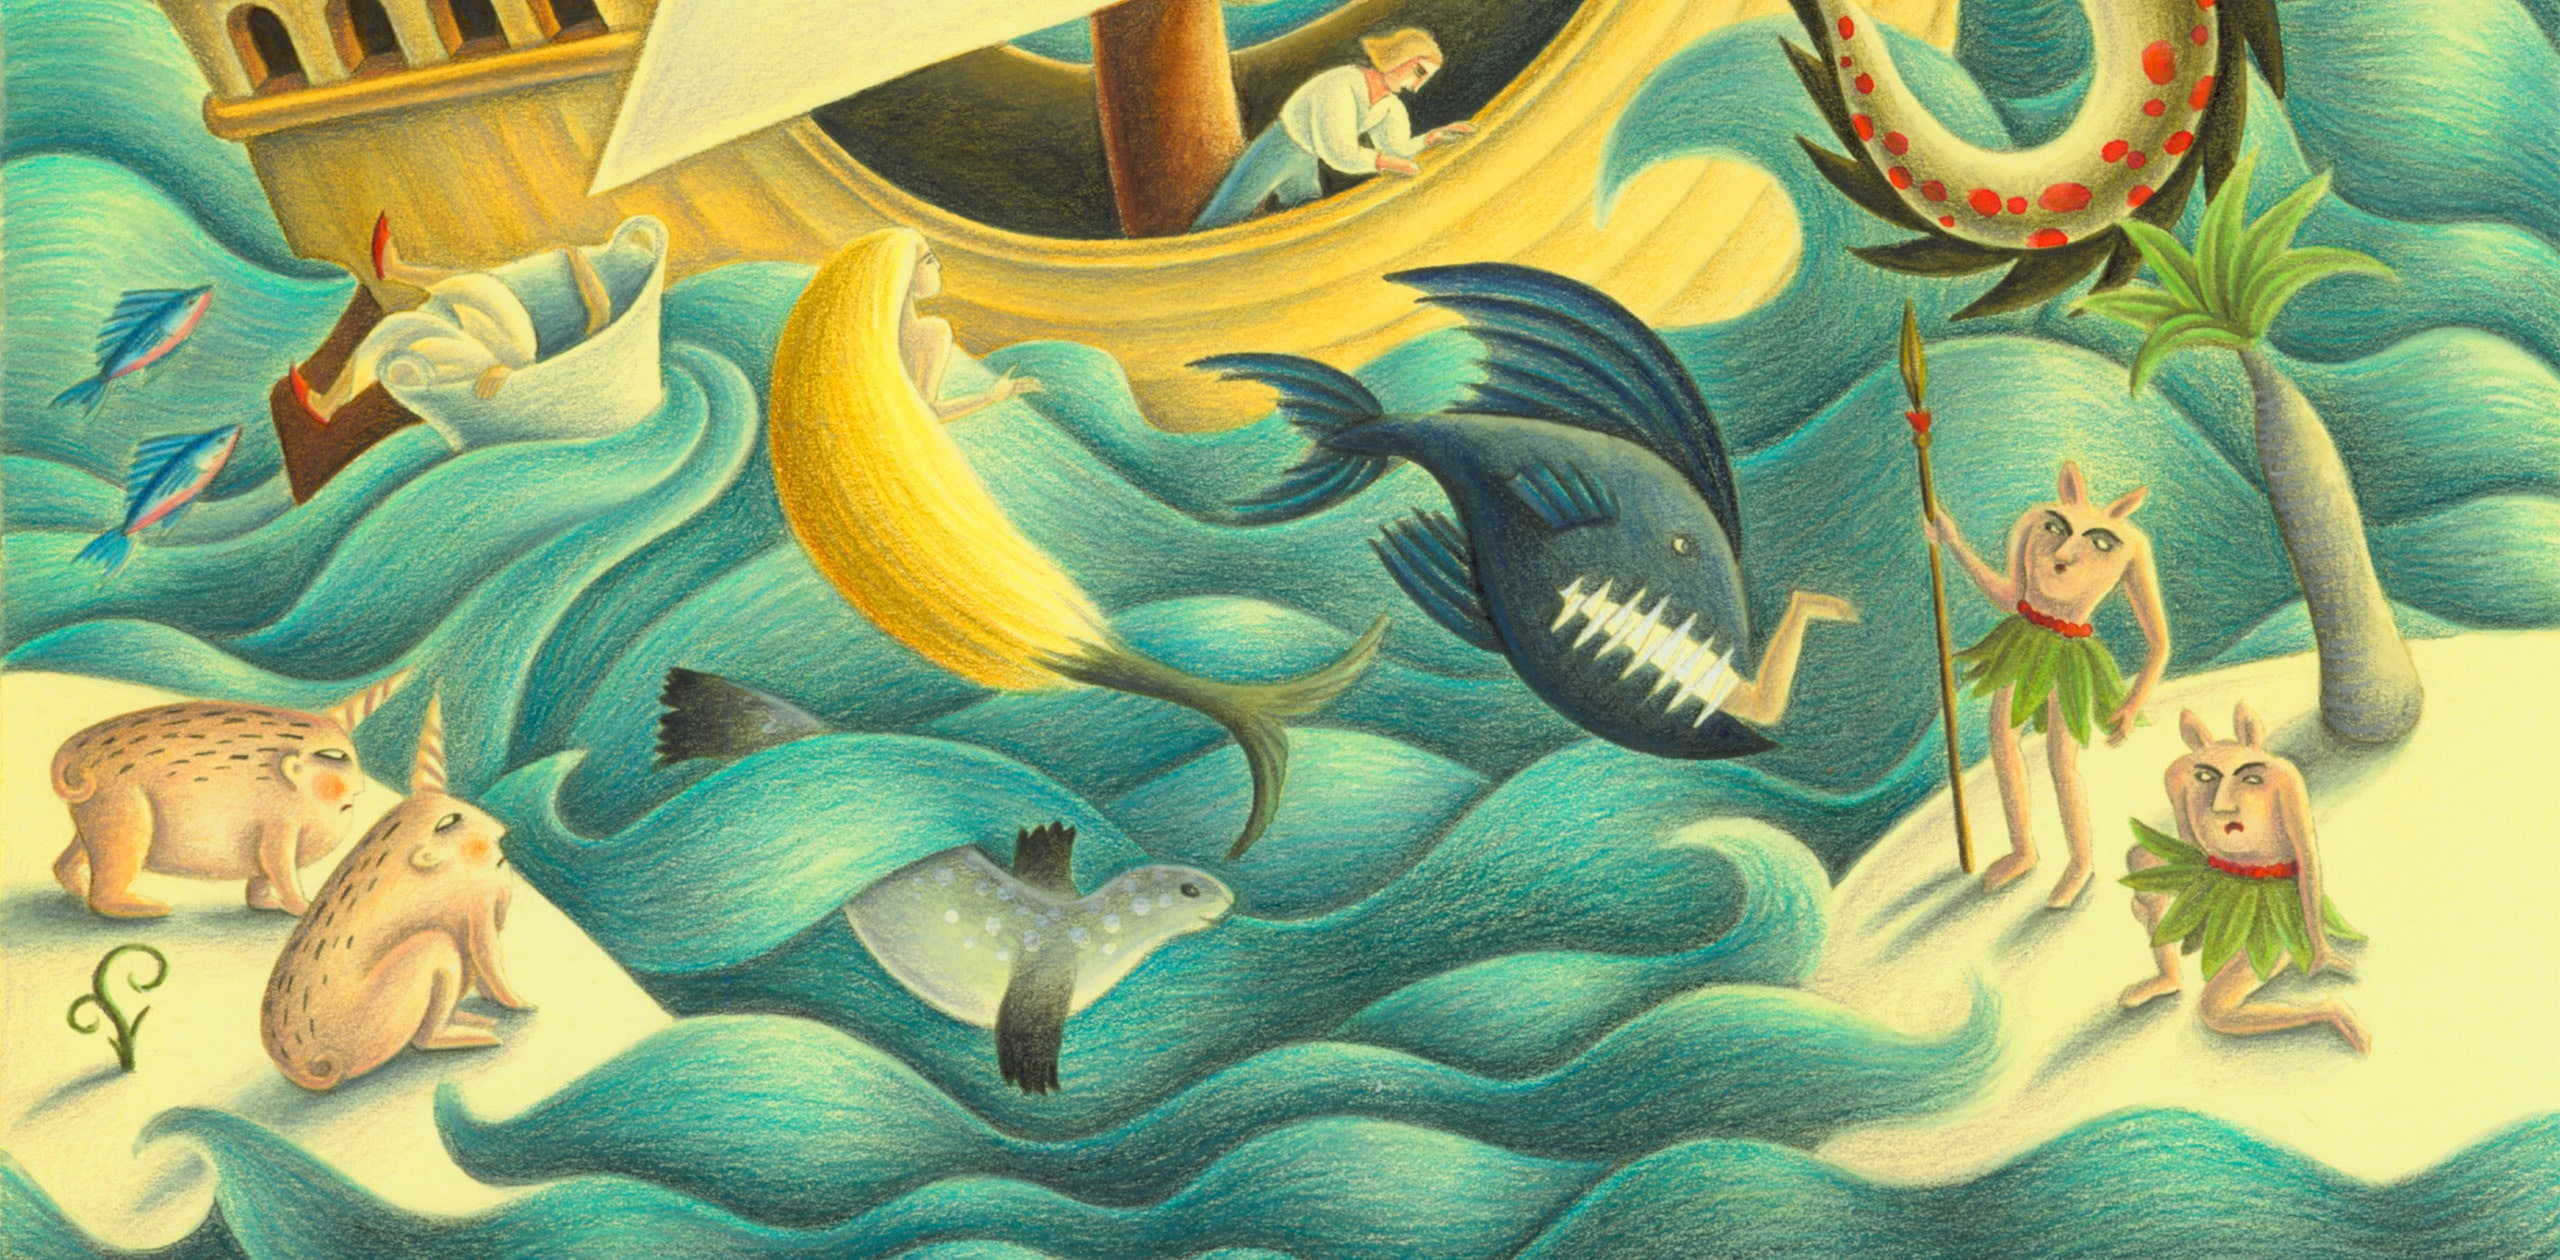 The Barefoot Stories from the Sea Gallery. 'Banner Image'